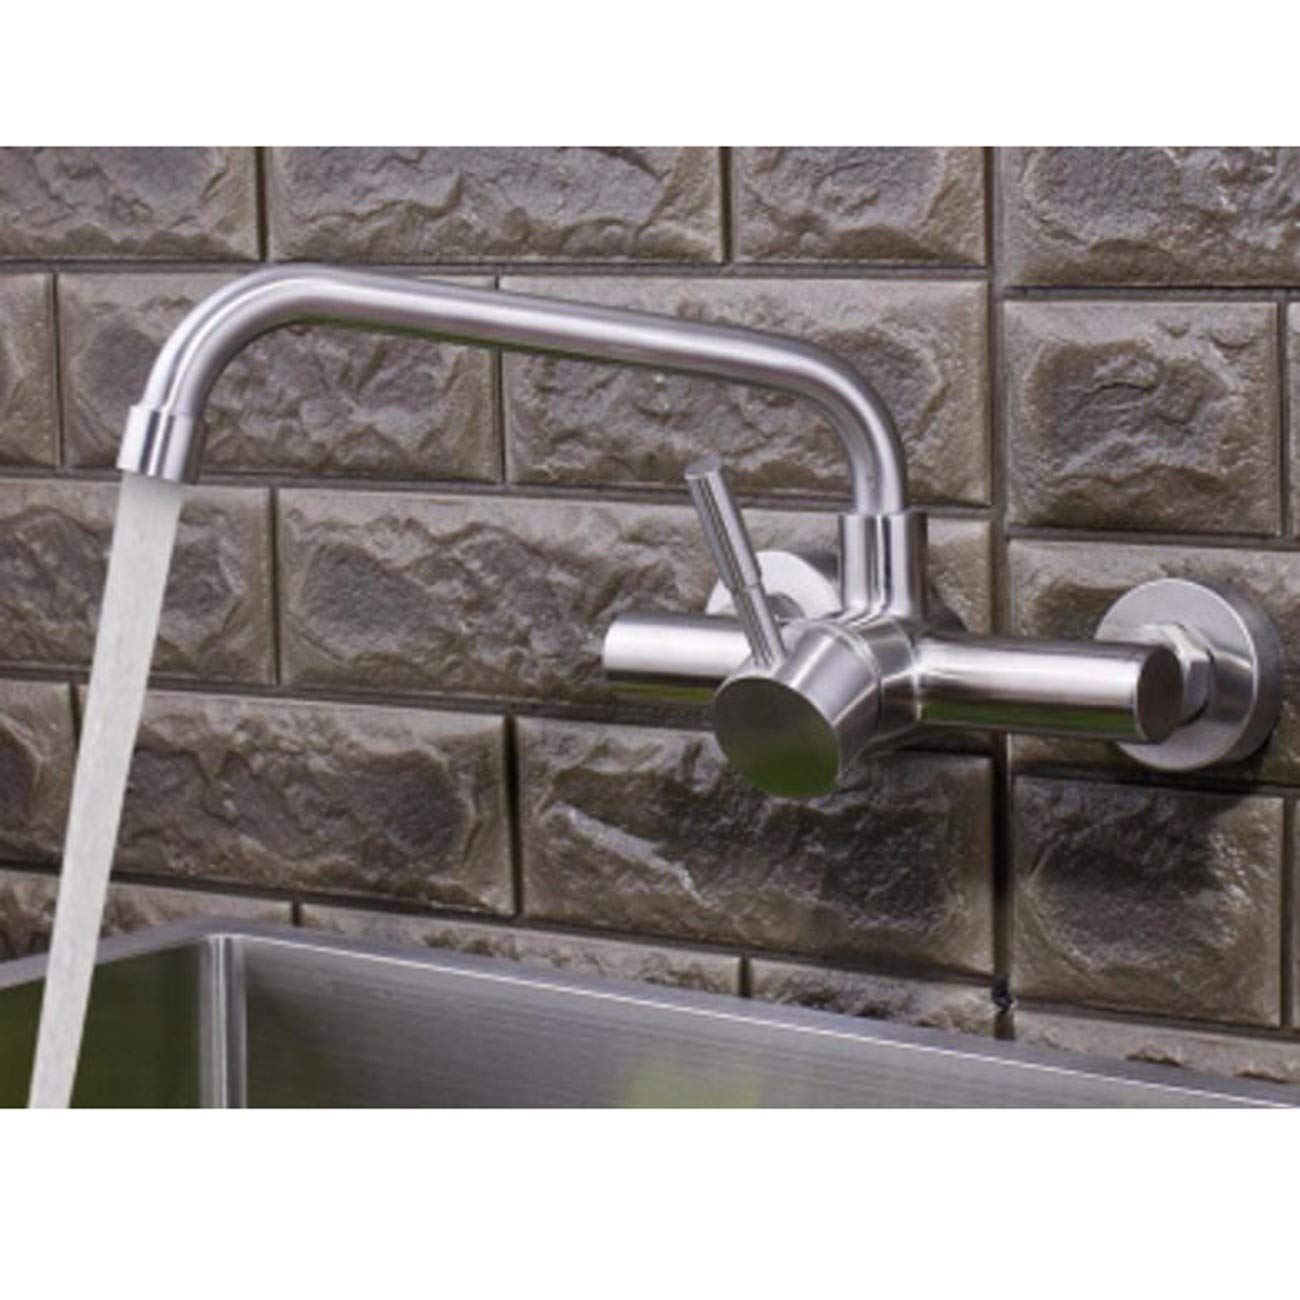 F MulFaucet Stainless Steel Wall-Mounted Faucet hot and Cold Kitchen Sink Faucet redating Sink C